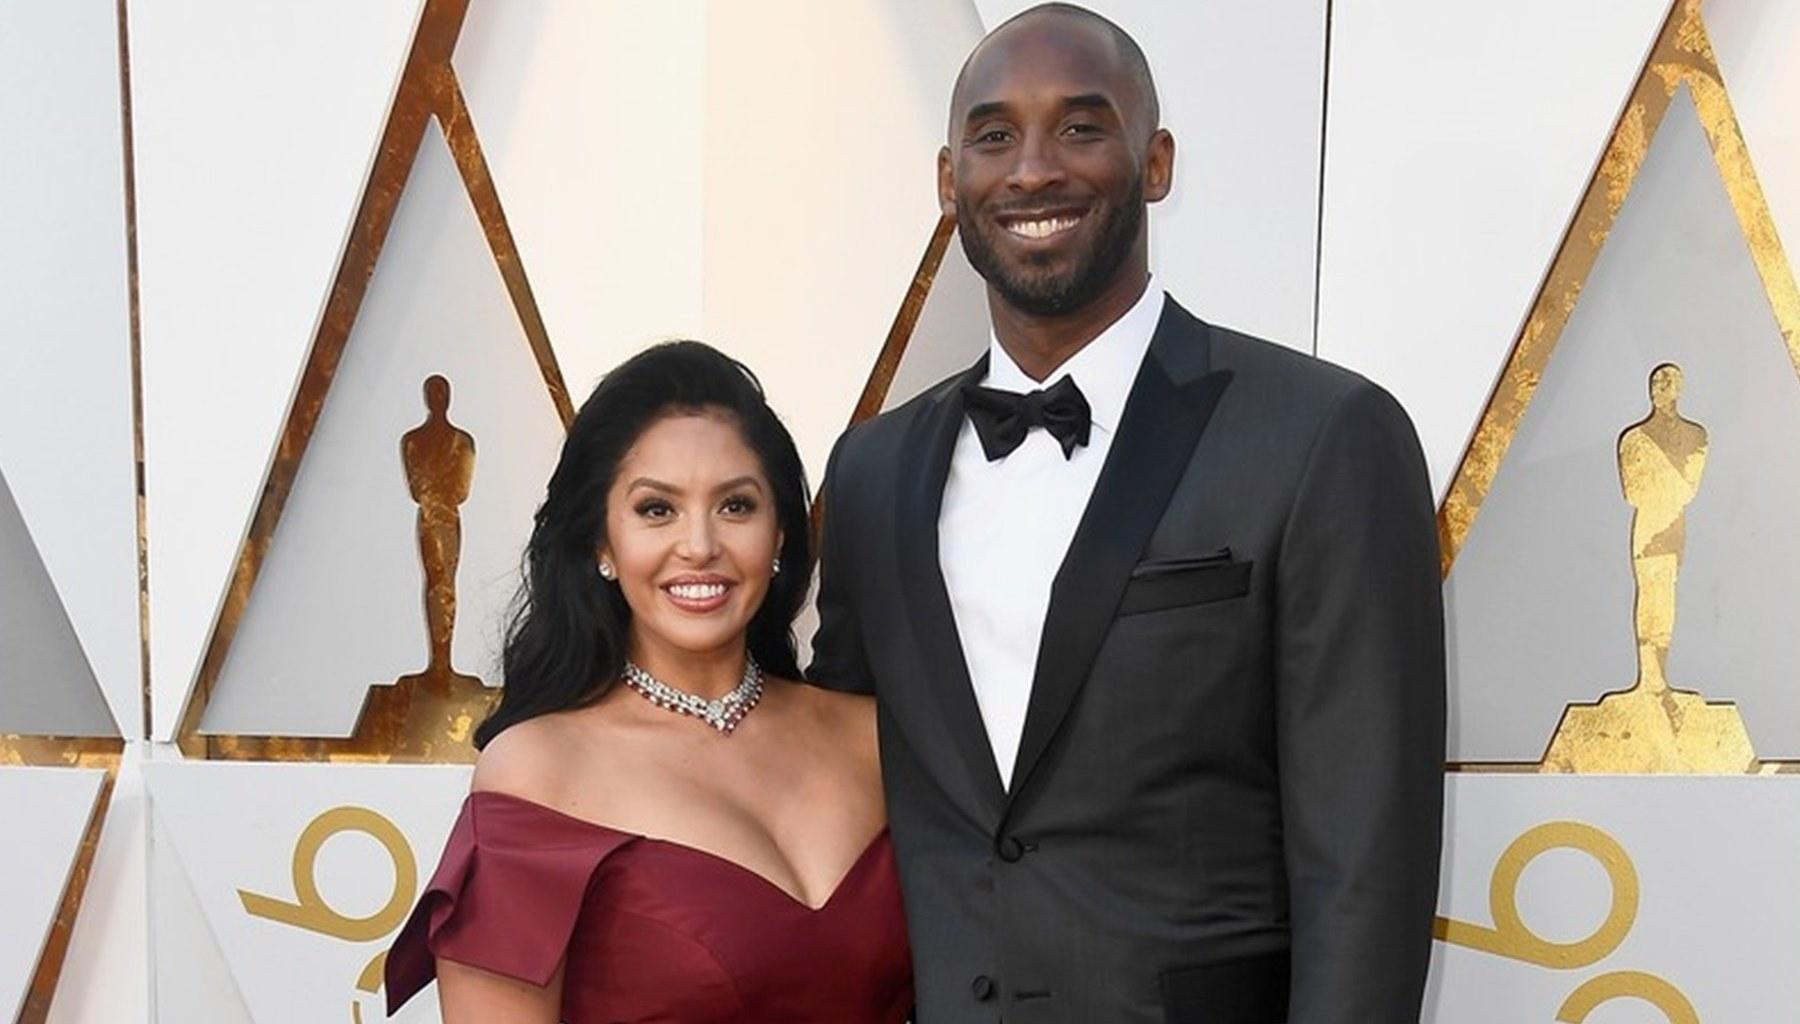 Kobe Bryant's Daughter Plays Basketball In High Heels And Mini Dress In Videos Posted By Her Mom, Vanessa Bryant -- Fans Are Impressed And Cringing For This Reason